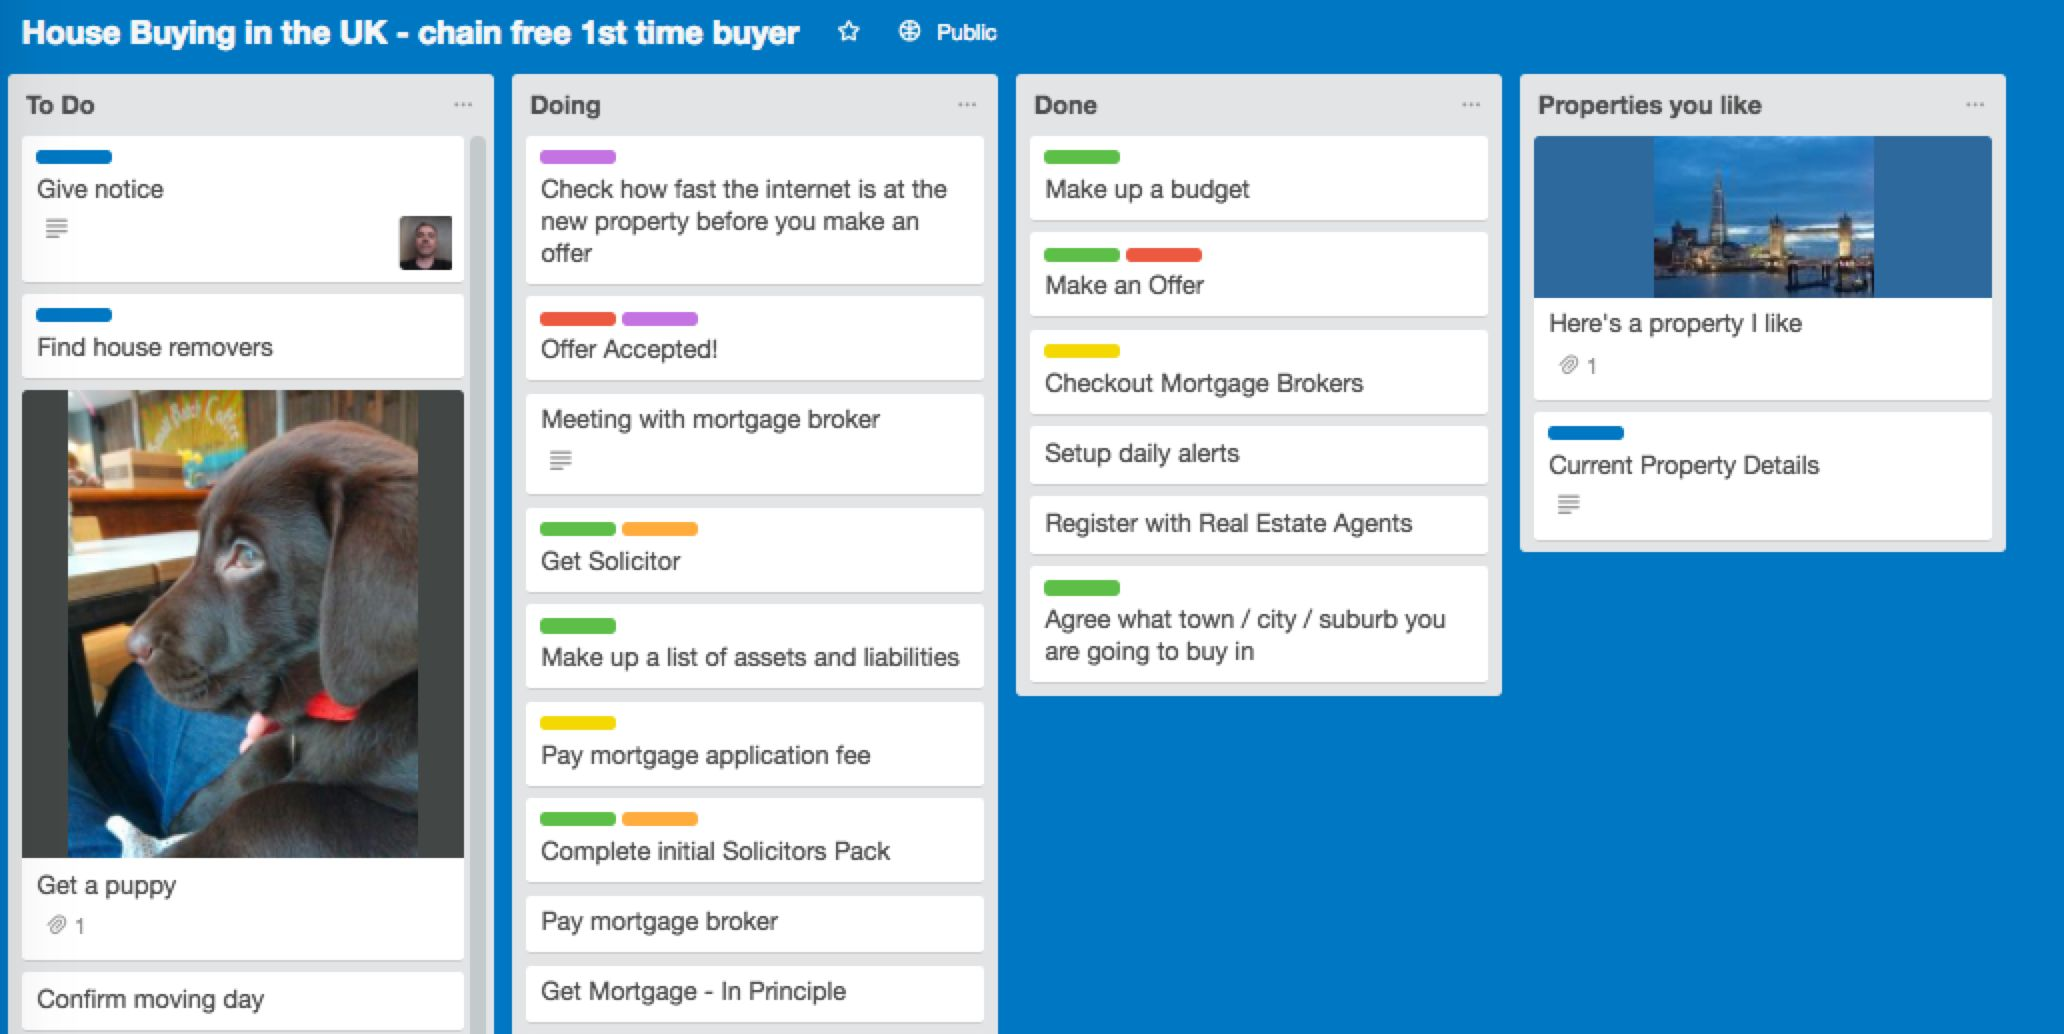 Homebuying Trello board